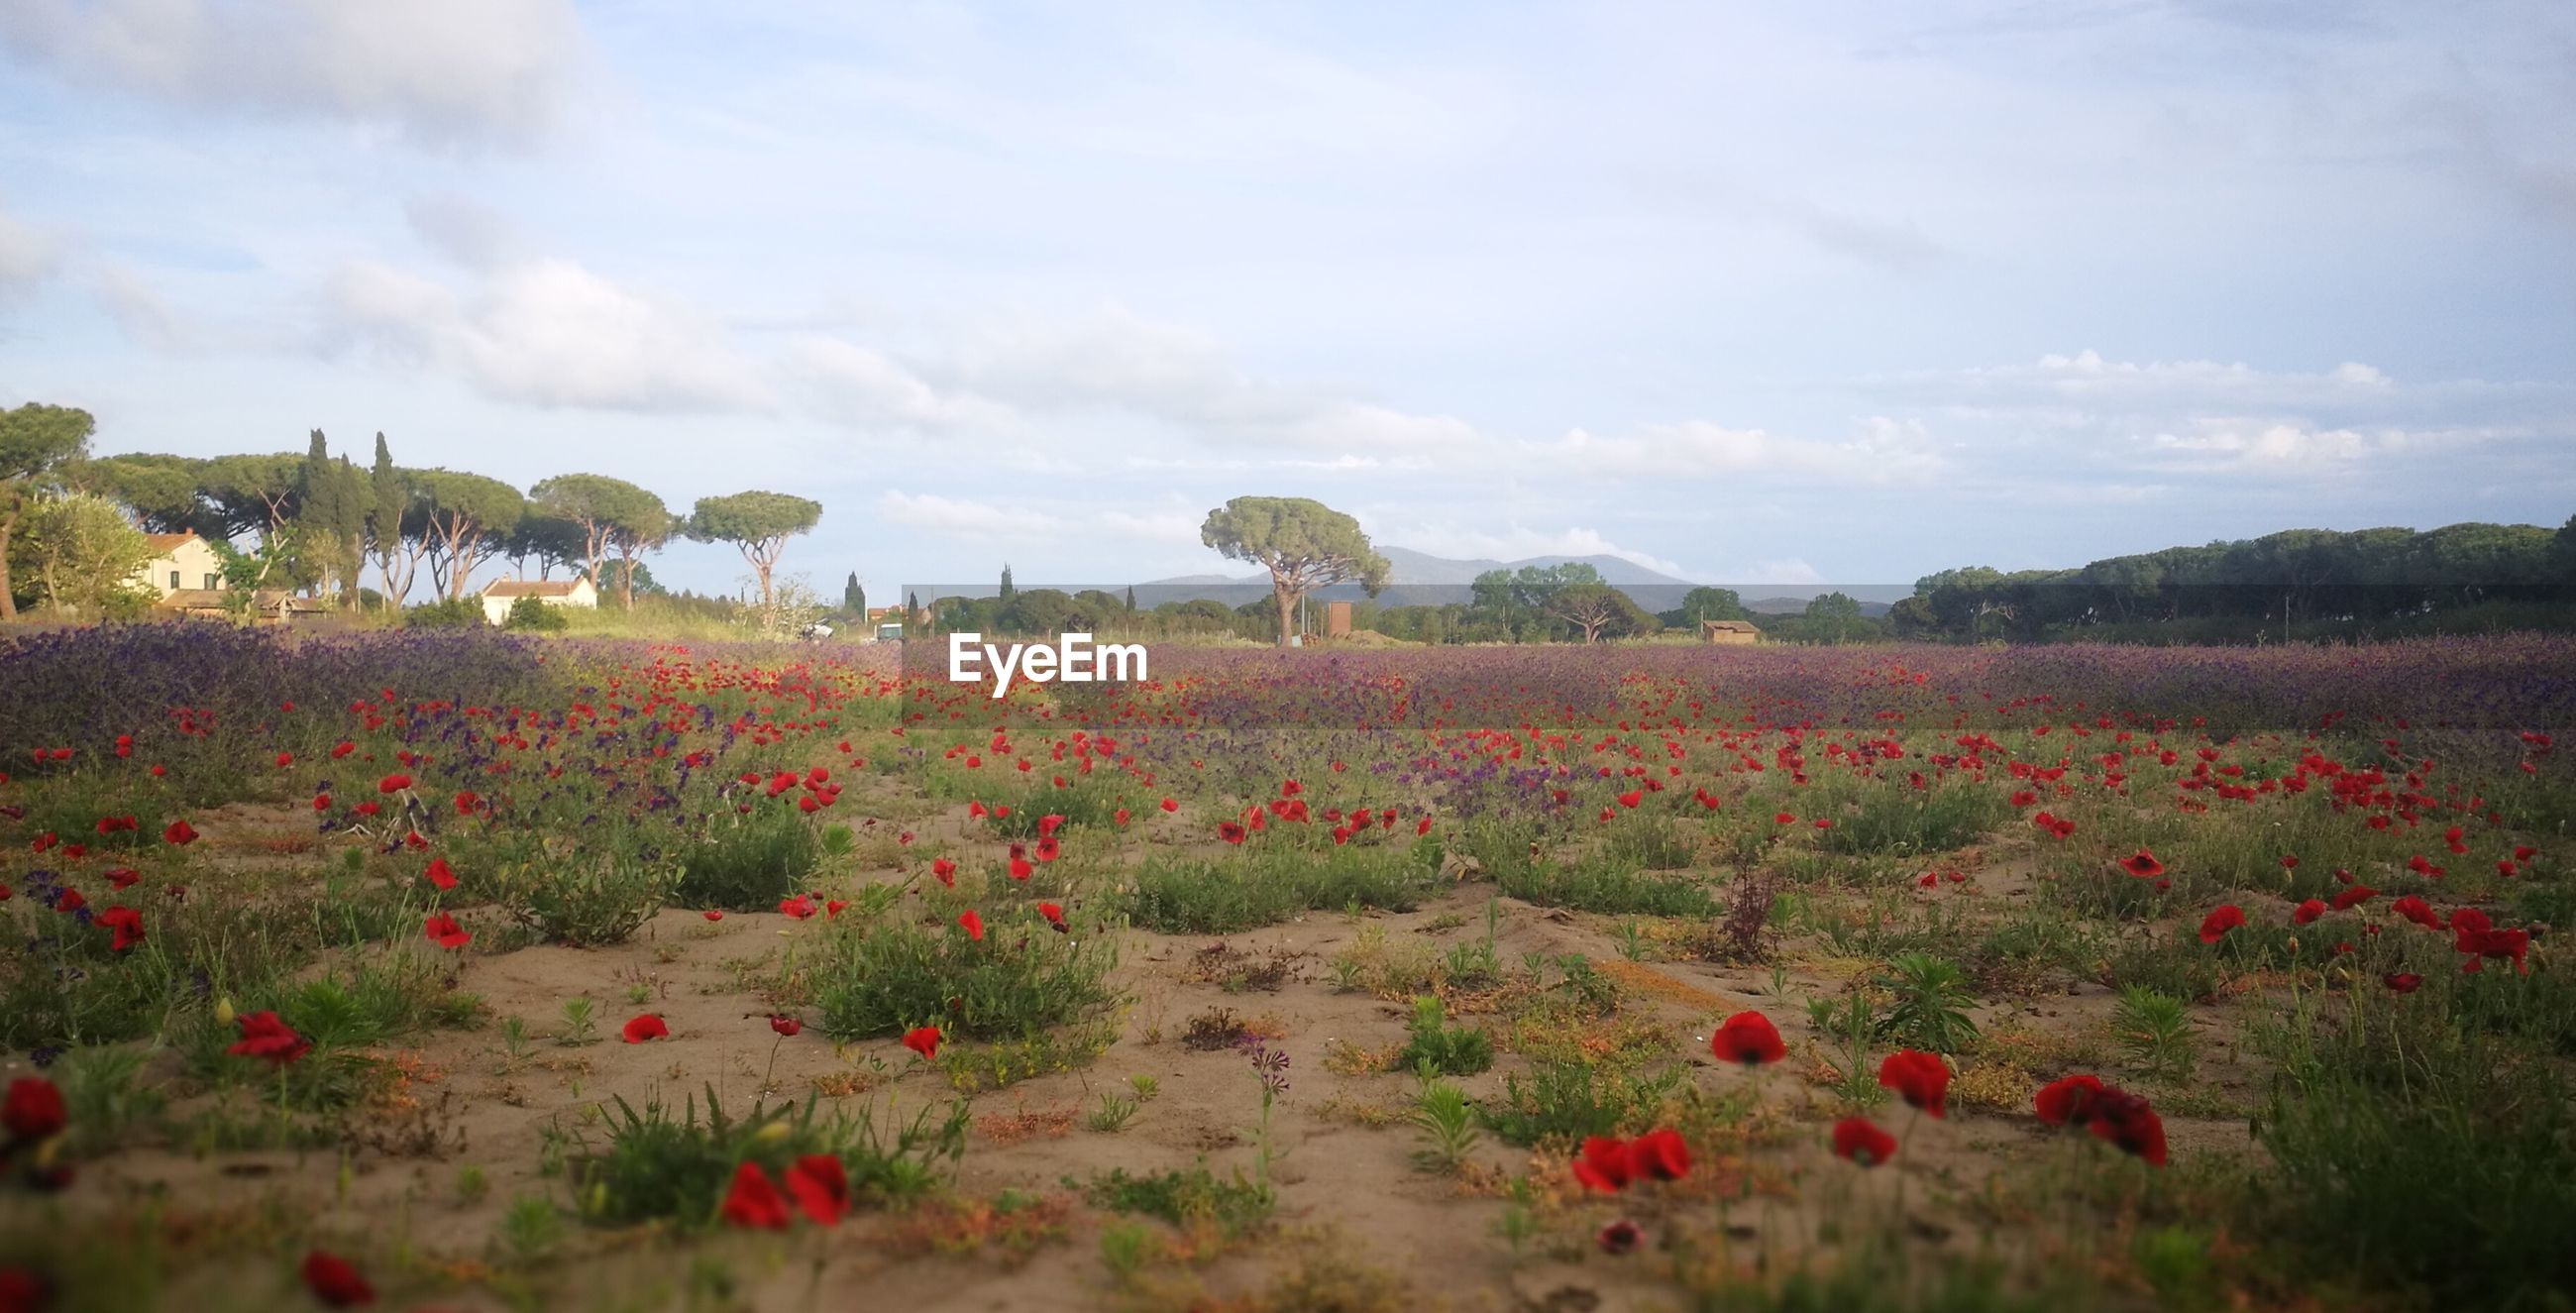 FLOWERS GROWING ON LAND AGAINST SKY